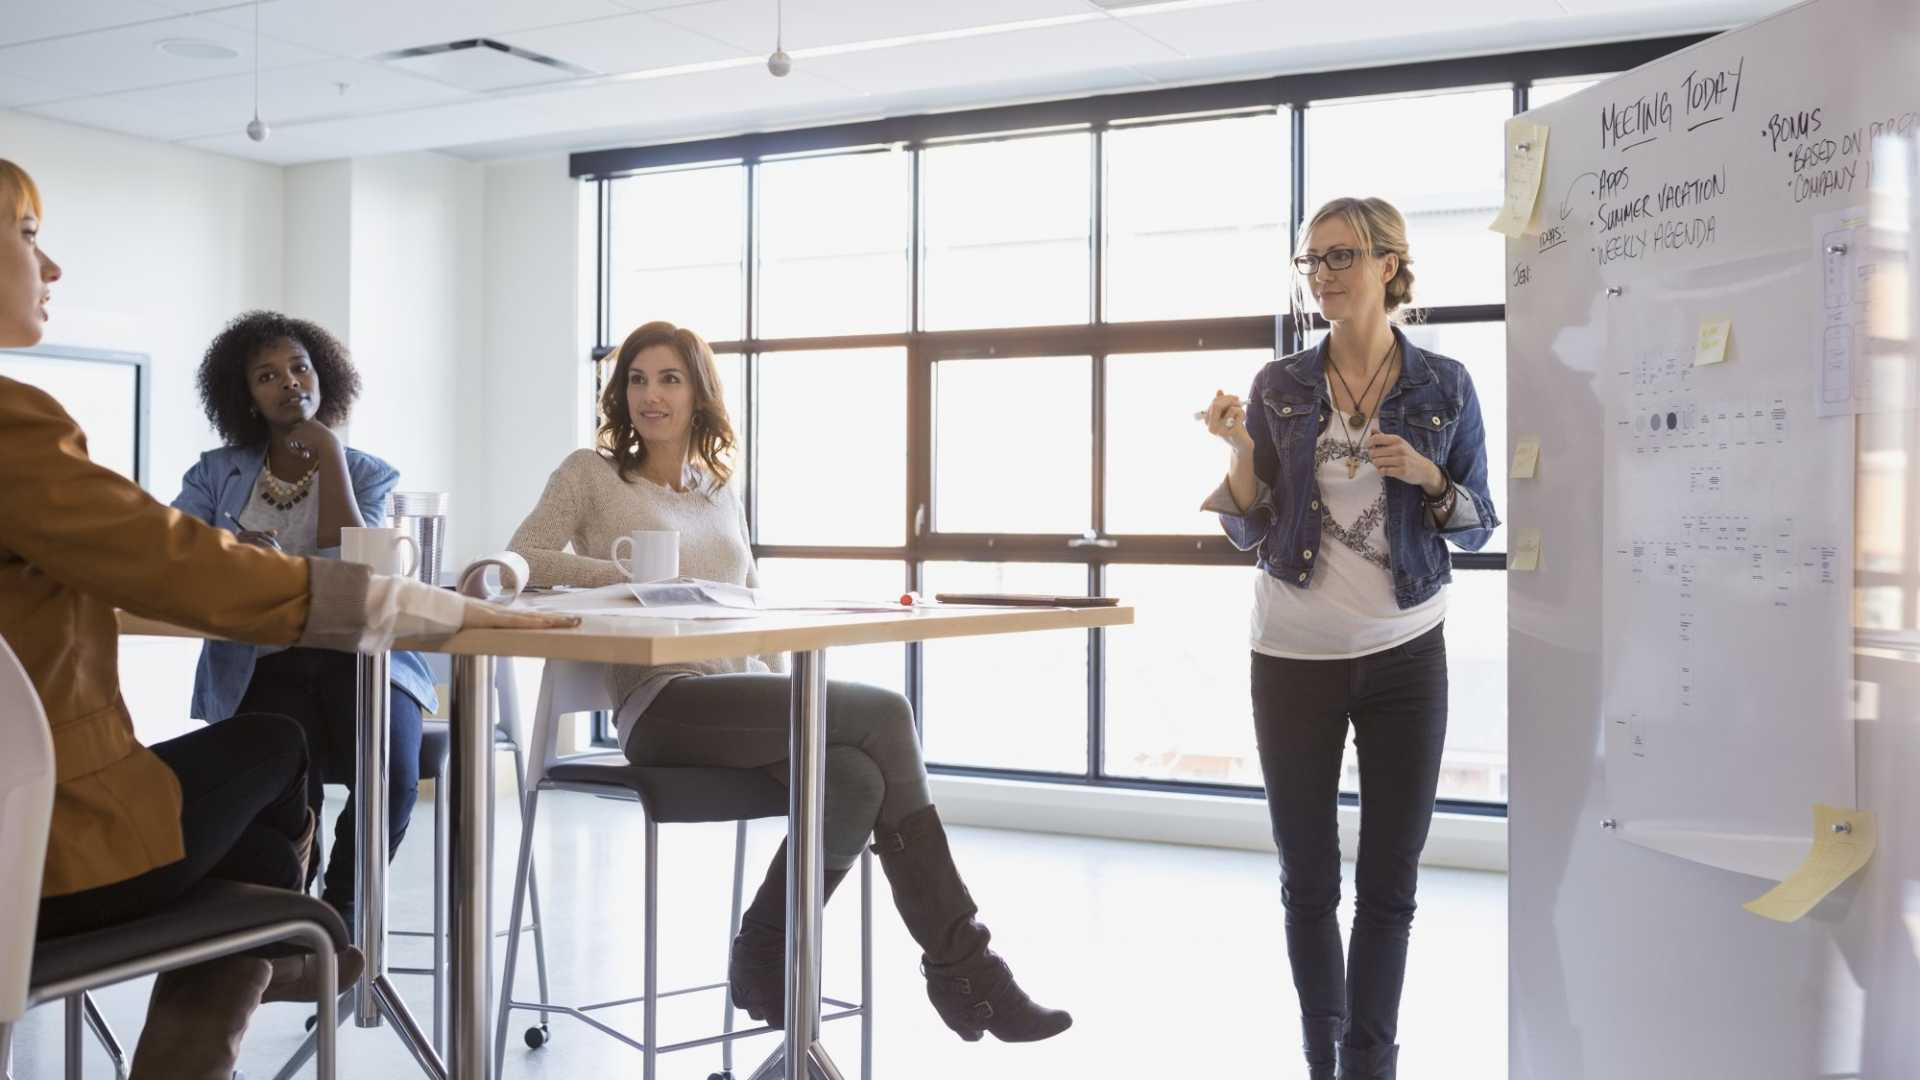 6 Things Managers Should Never Ask Their Employees to Do